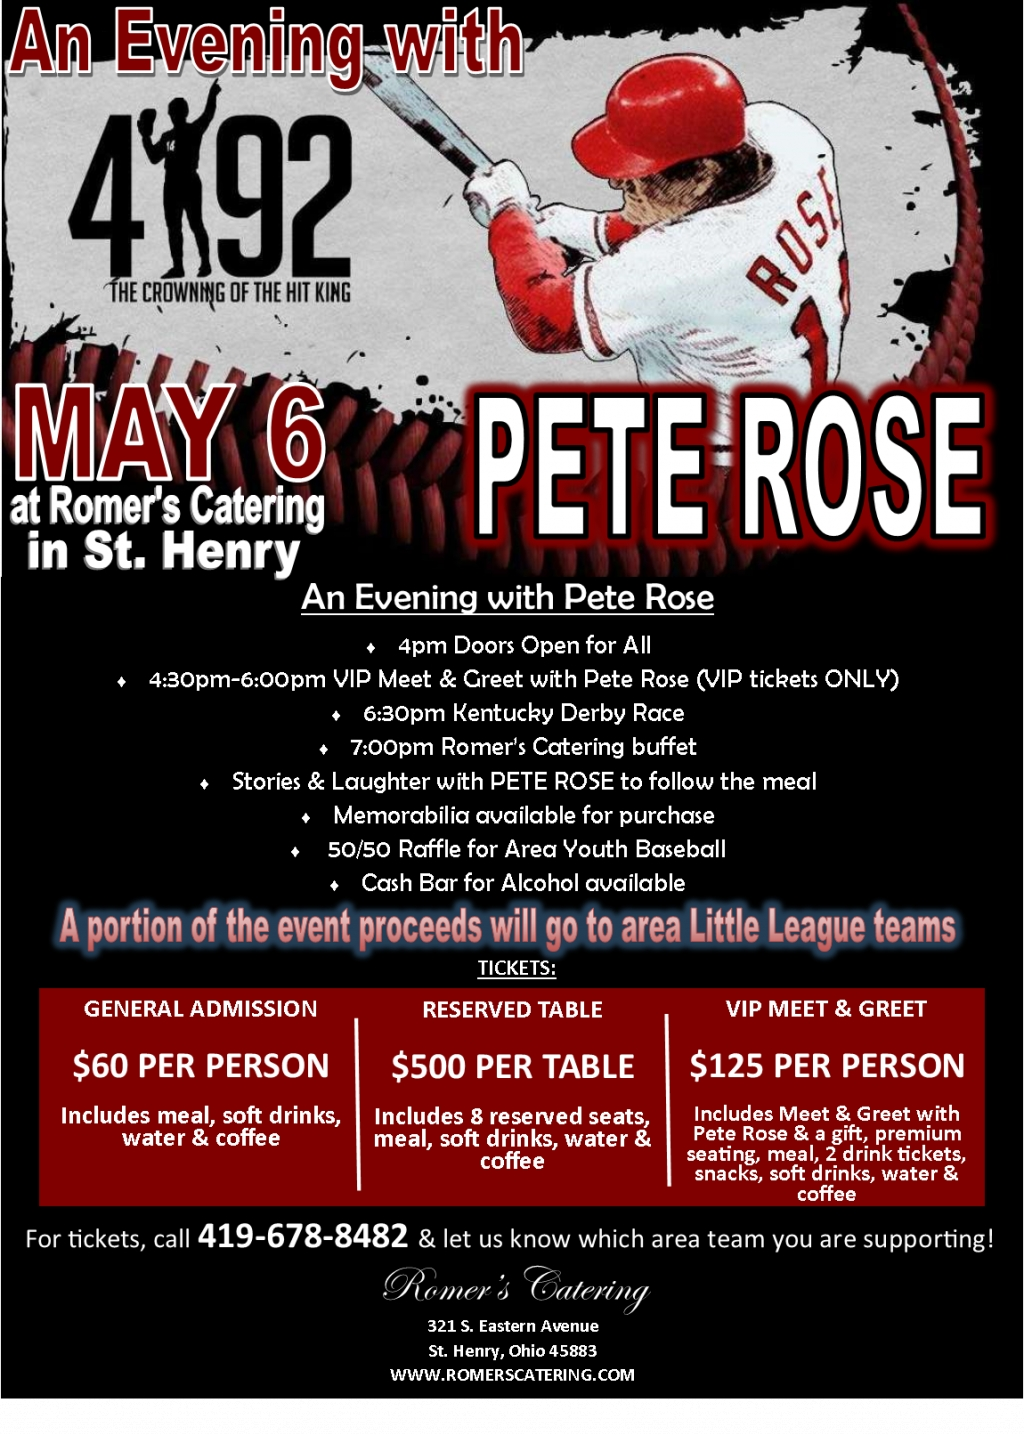 An Evening with Pete Rose